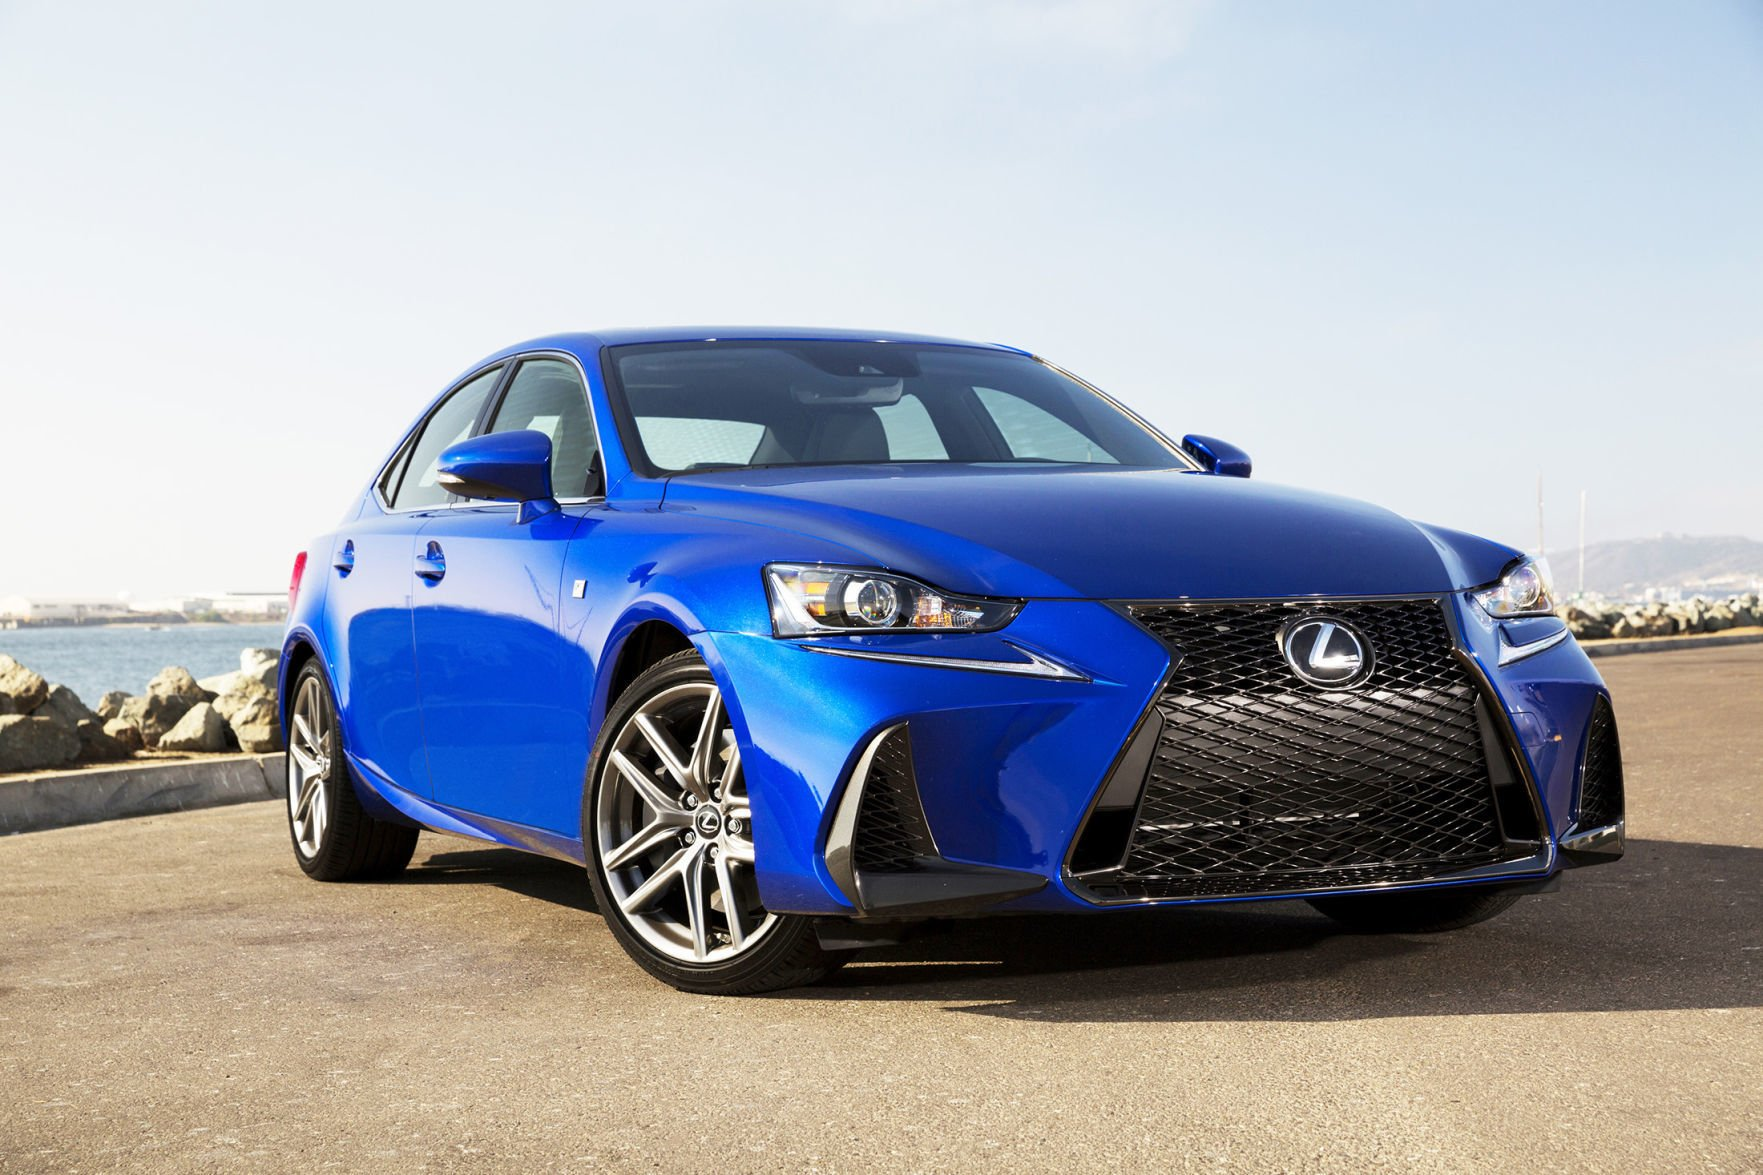 The Lexus IS Is A Powerful, Sharp Handling Sports Sedan That Gets A  Horsepower Boost For 2018. The Entry Level Model Also Gets A New Name,  Changing From IS ...